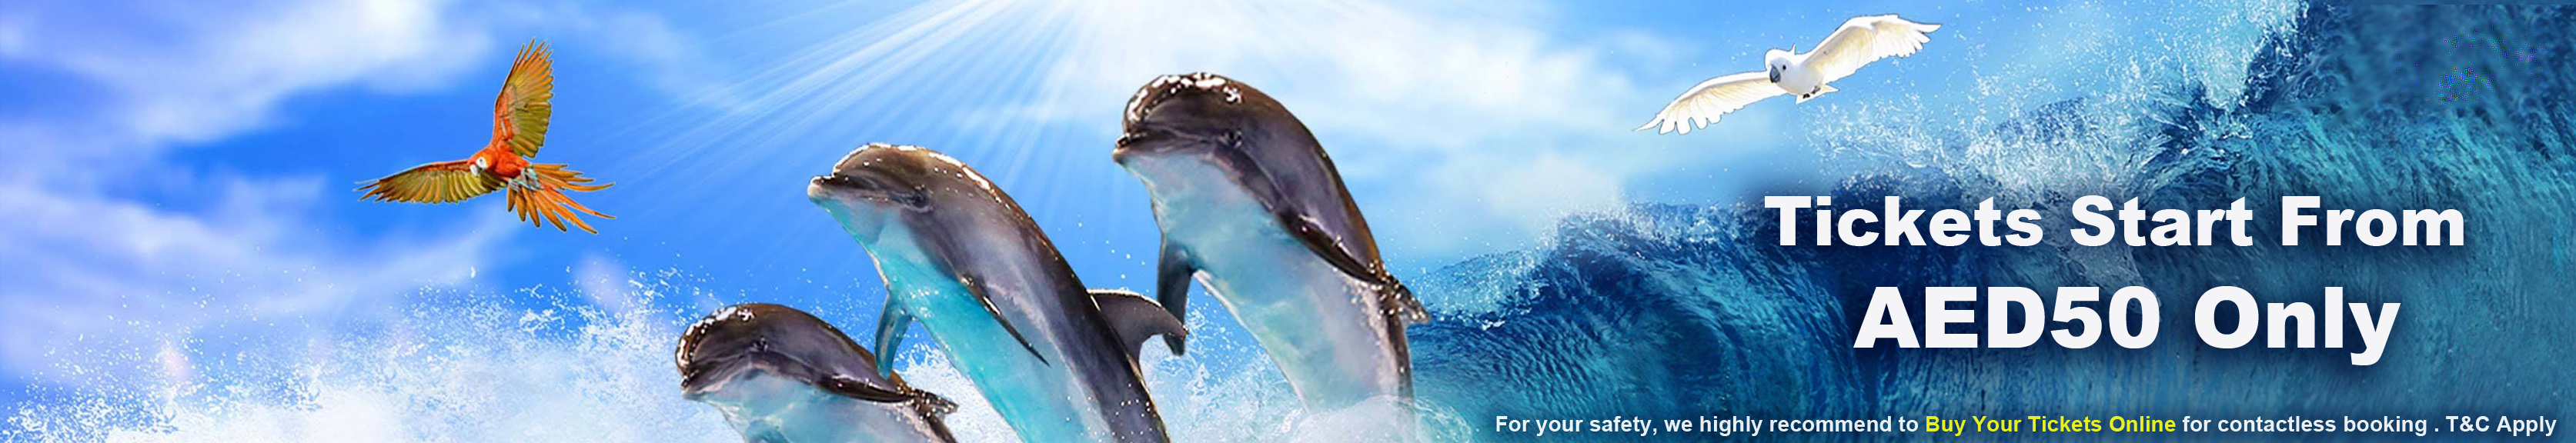 offers in dolphin and seal show in DUBAI - UAE's Only Dolphin Show Best Offers in 2021